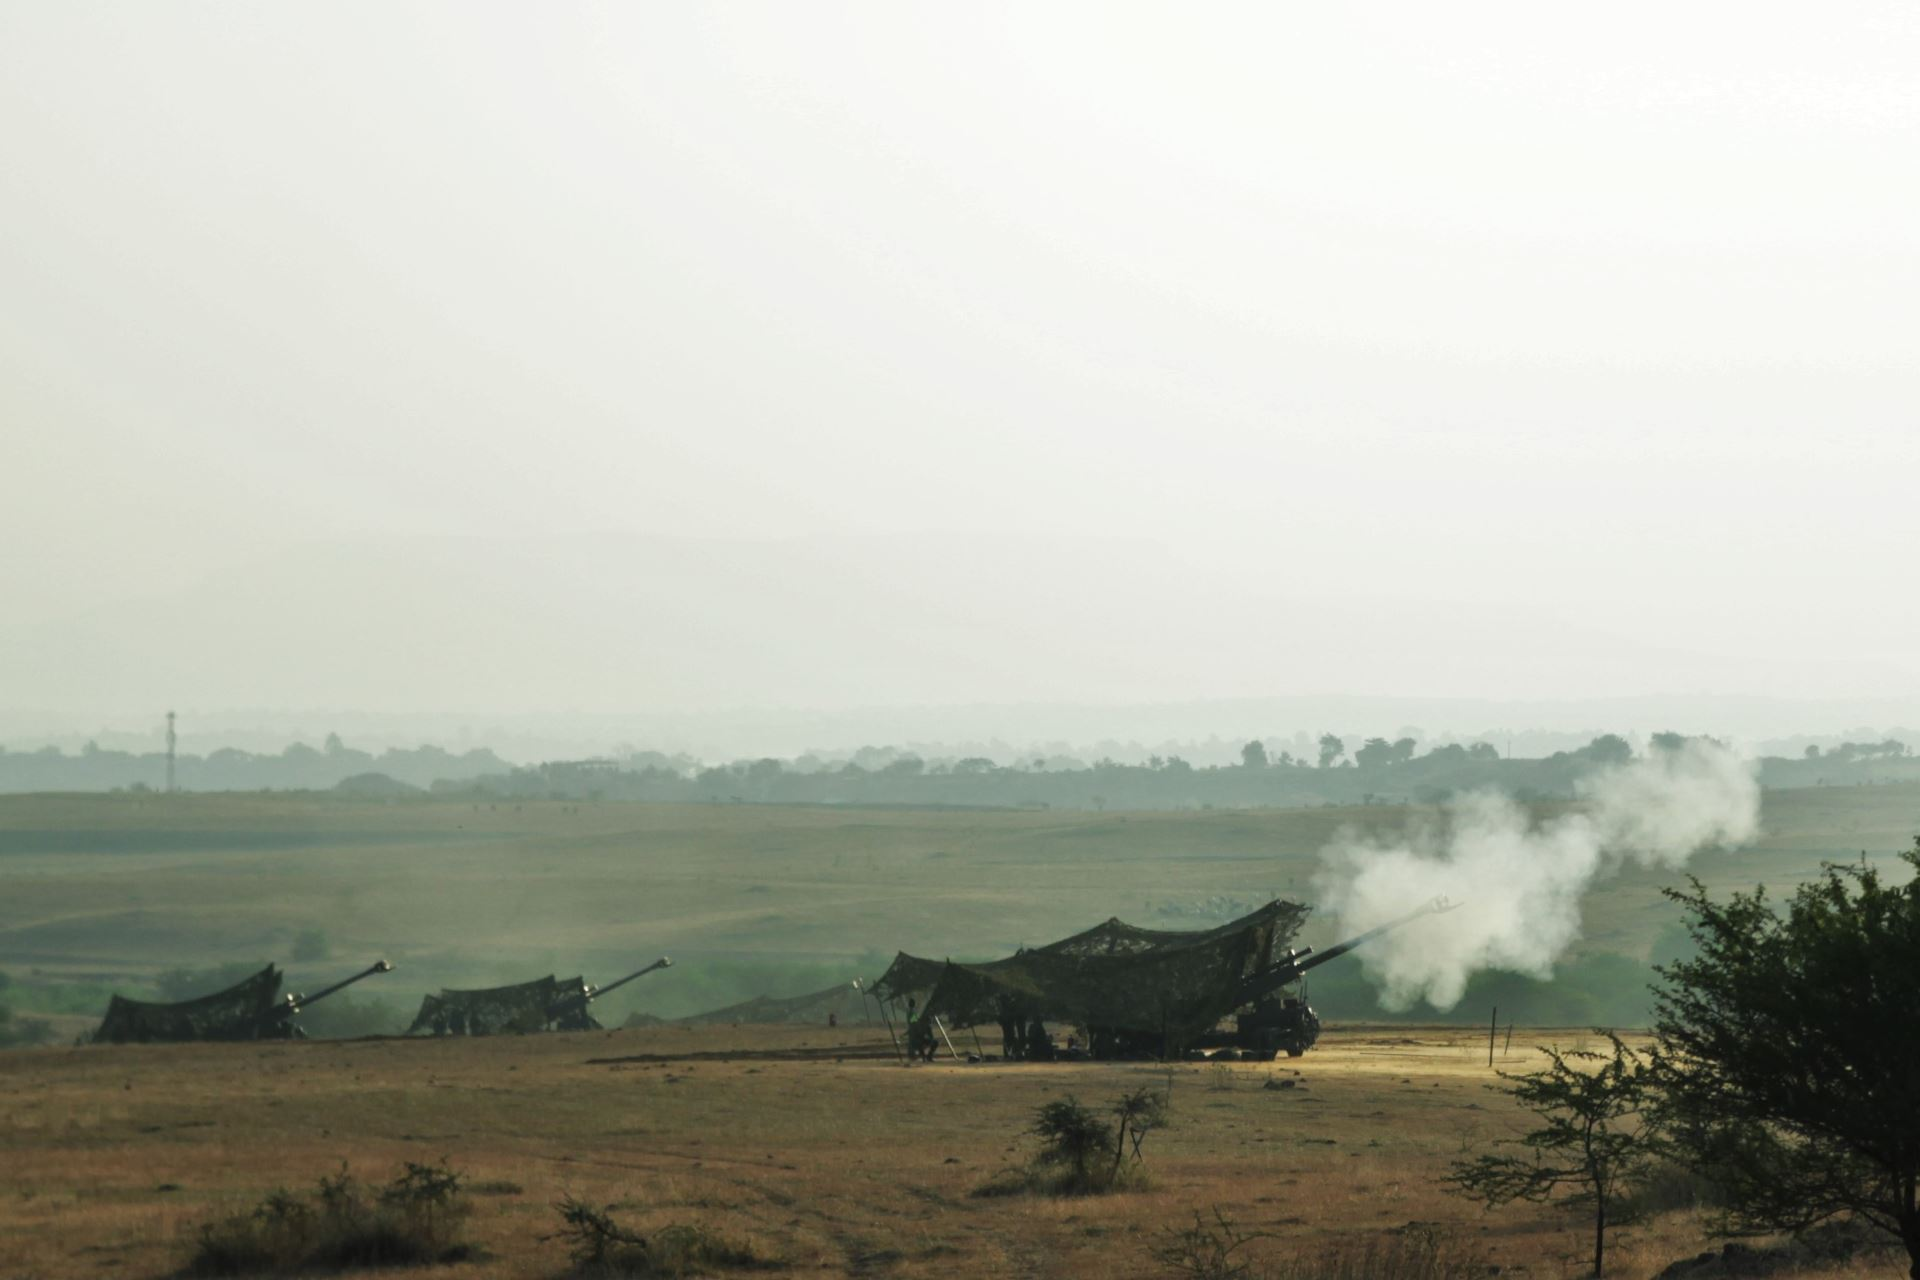 The Singapore Armed Forces' Singapore Light Weight Howitzers firing off in a joint live-firing with the Indian Army at Exercise Agni Warrior 2018.